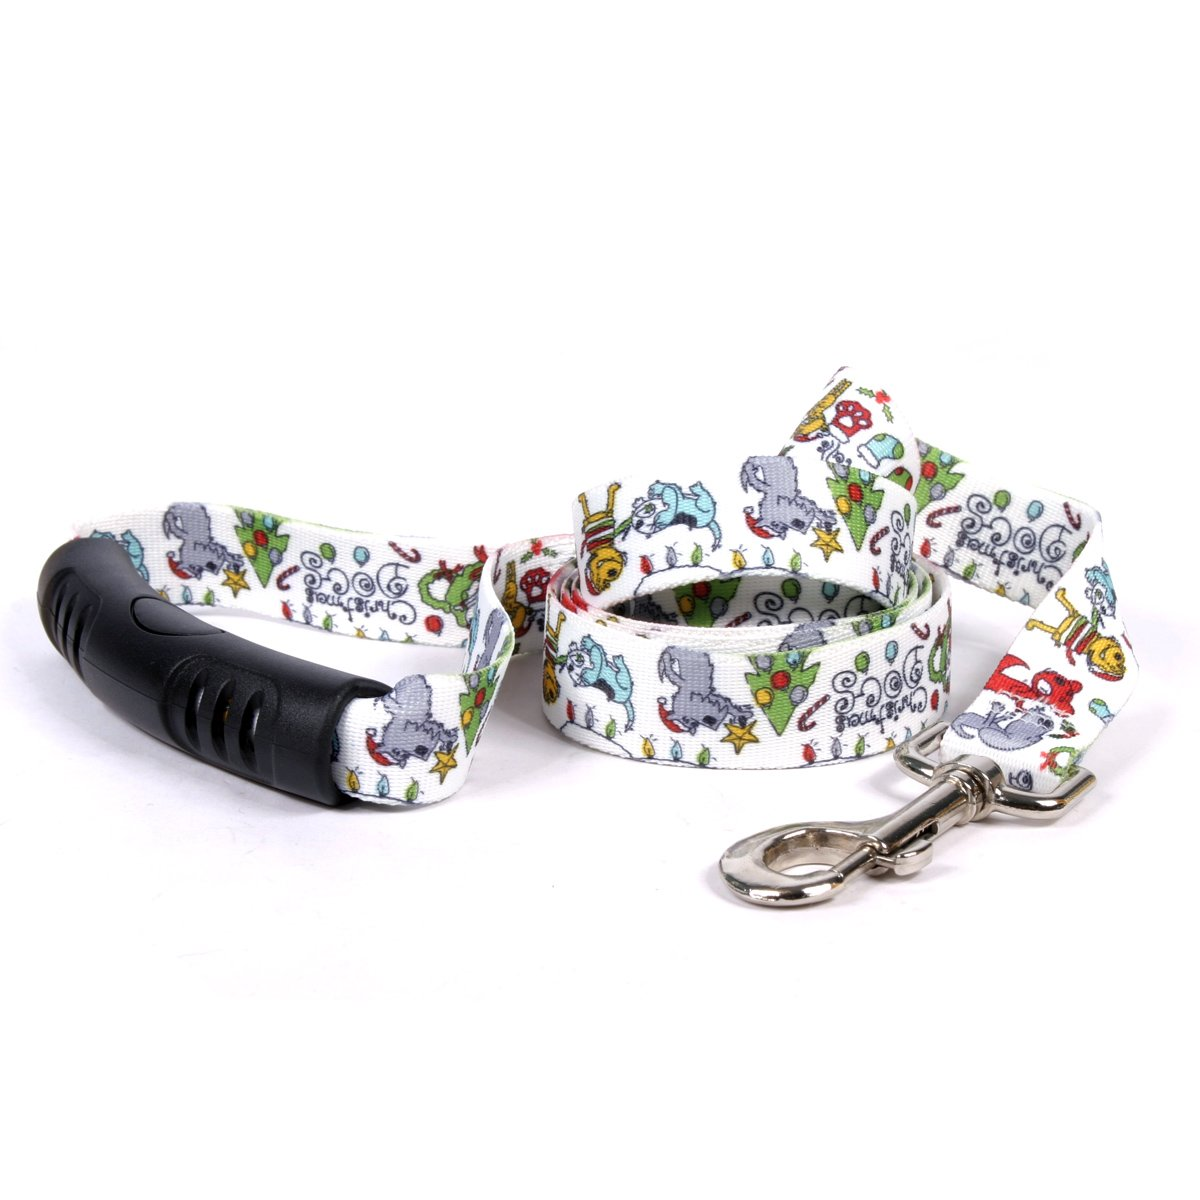 Yellow Dog Design Christmas Dogs Ez-Grip Dog Leash with Comfort Handle 1'' Wide and 5' (60'') Long, Large